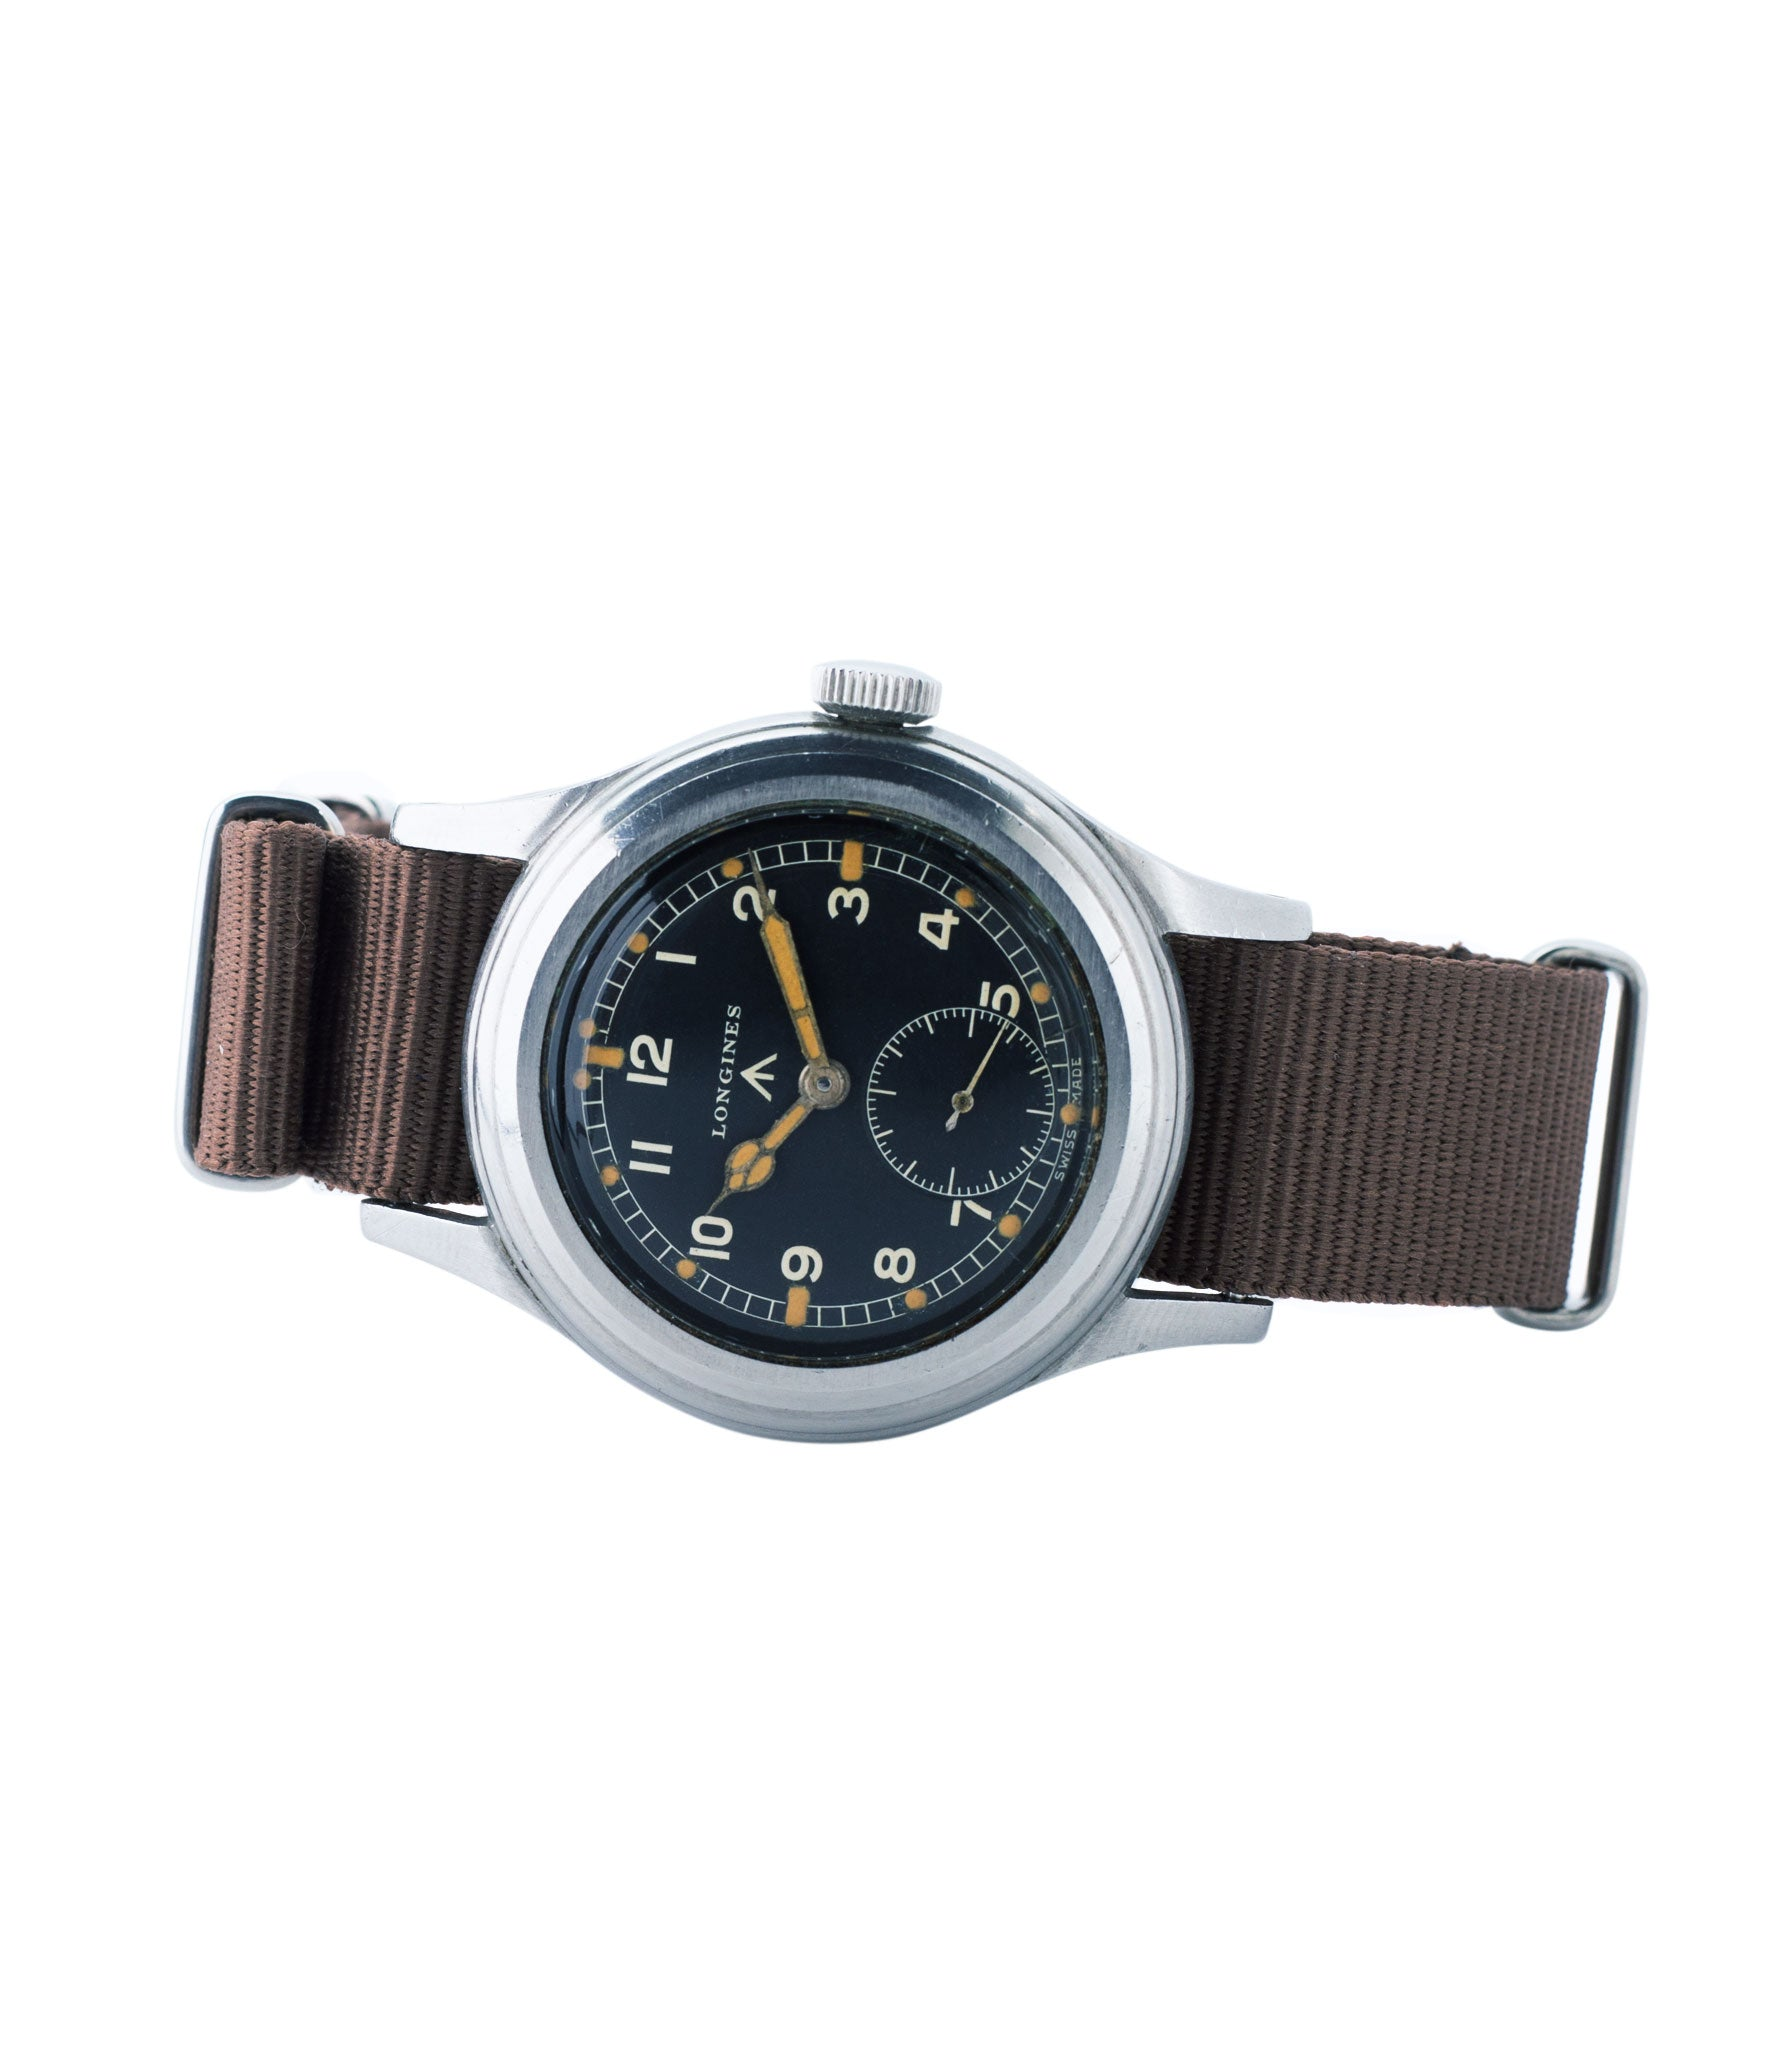 Dirty Dozen W.W.W. Longines British military MoD steel chronometer-graded watch for sale online at A Collected Man London vintage military watch specialist